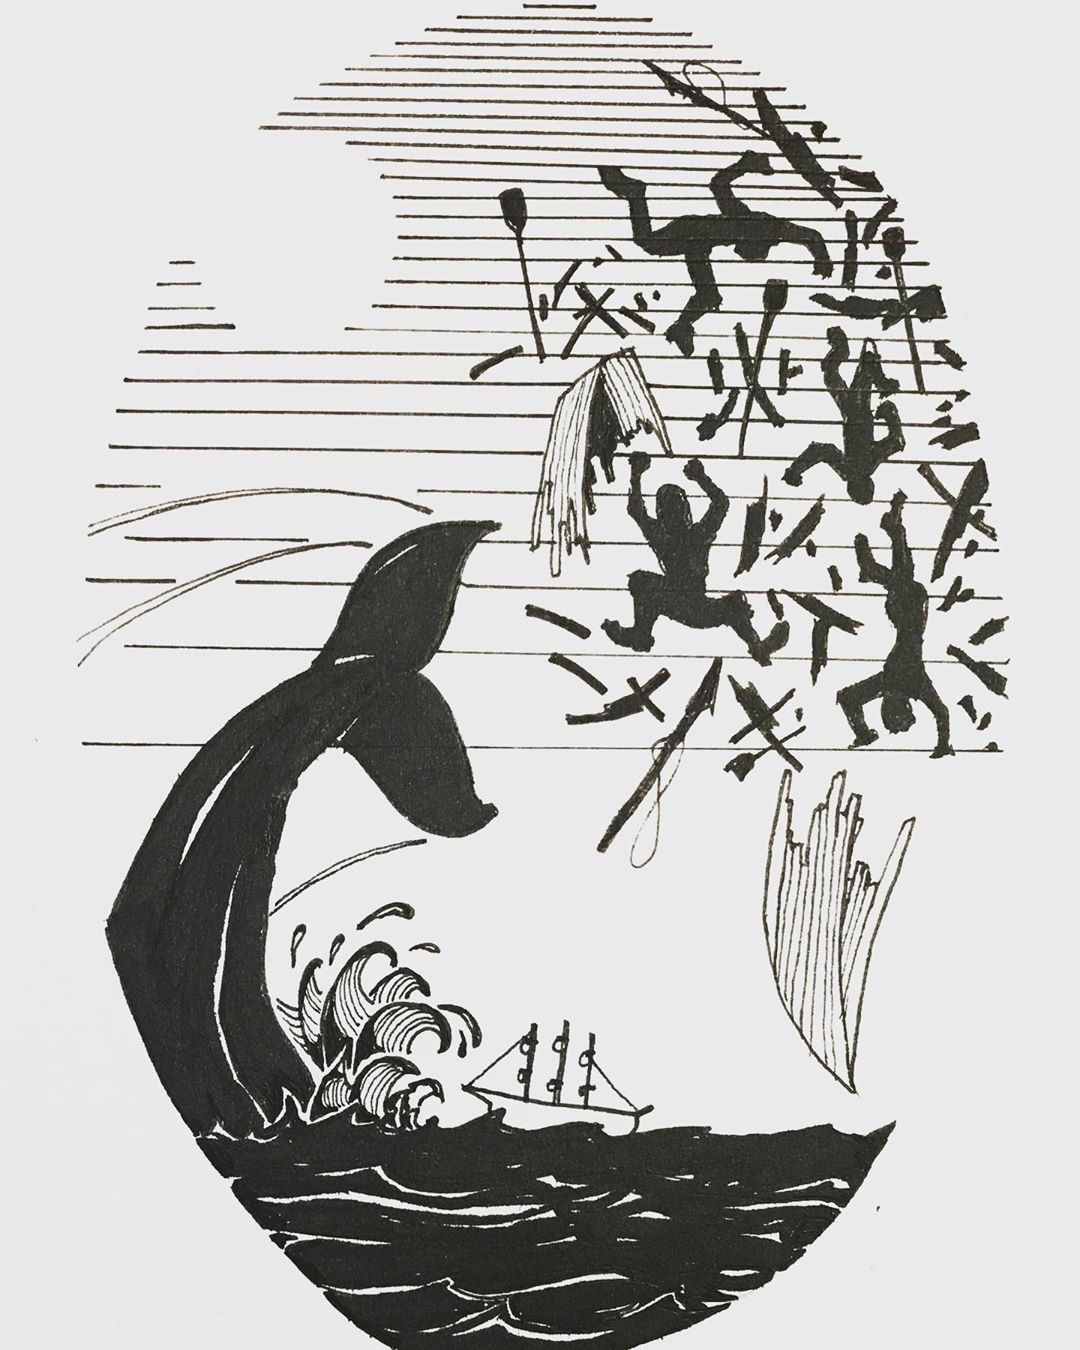 I know it's a popular motif. But I've always related to it. — #whale #whaling #paybackisabitch #payback #waves #illustration #sketchbook #sketching #designinspiration #penandink #drawing #blackandwhite #designinspo #tattooinspo #blackandwhitedrawing #inking #sketchbook #inksketch #ink #tattooideas #tattoodesign #tattooidea #inkdrawing